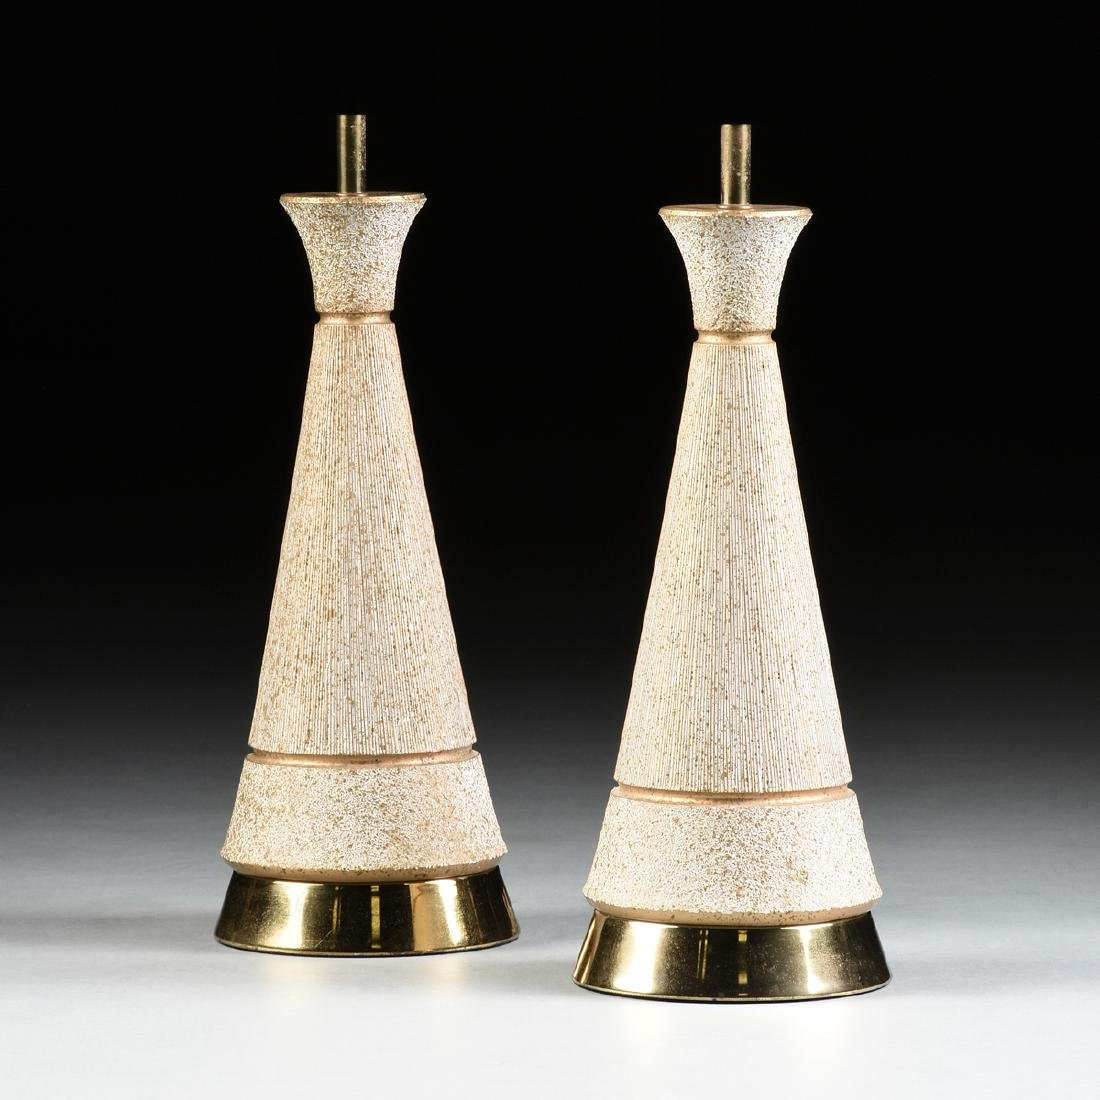 A PAIR OF VINTAGE MID CENTURY MODERN GILT AND WHITE